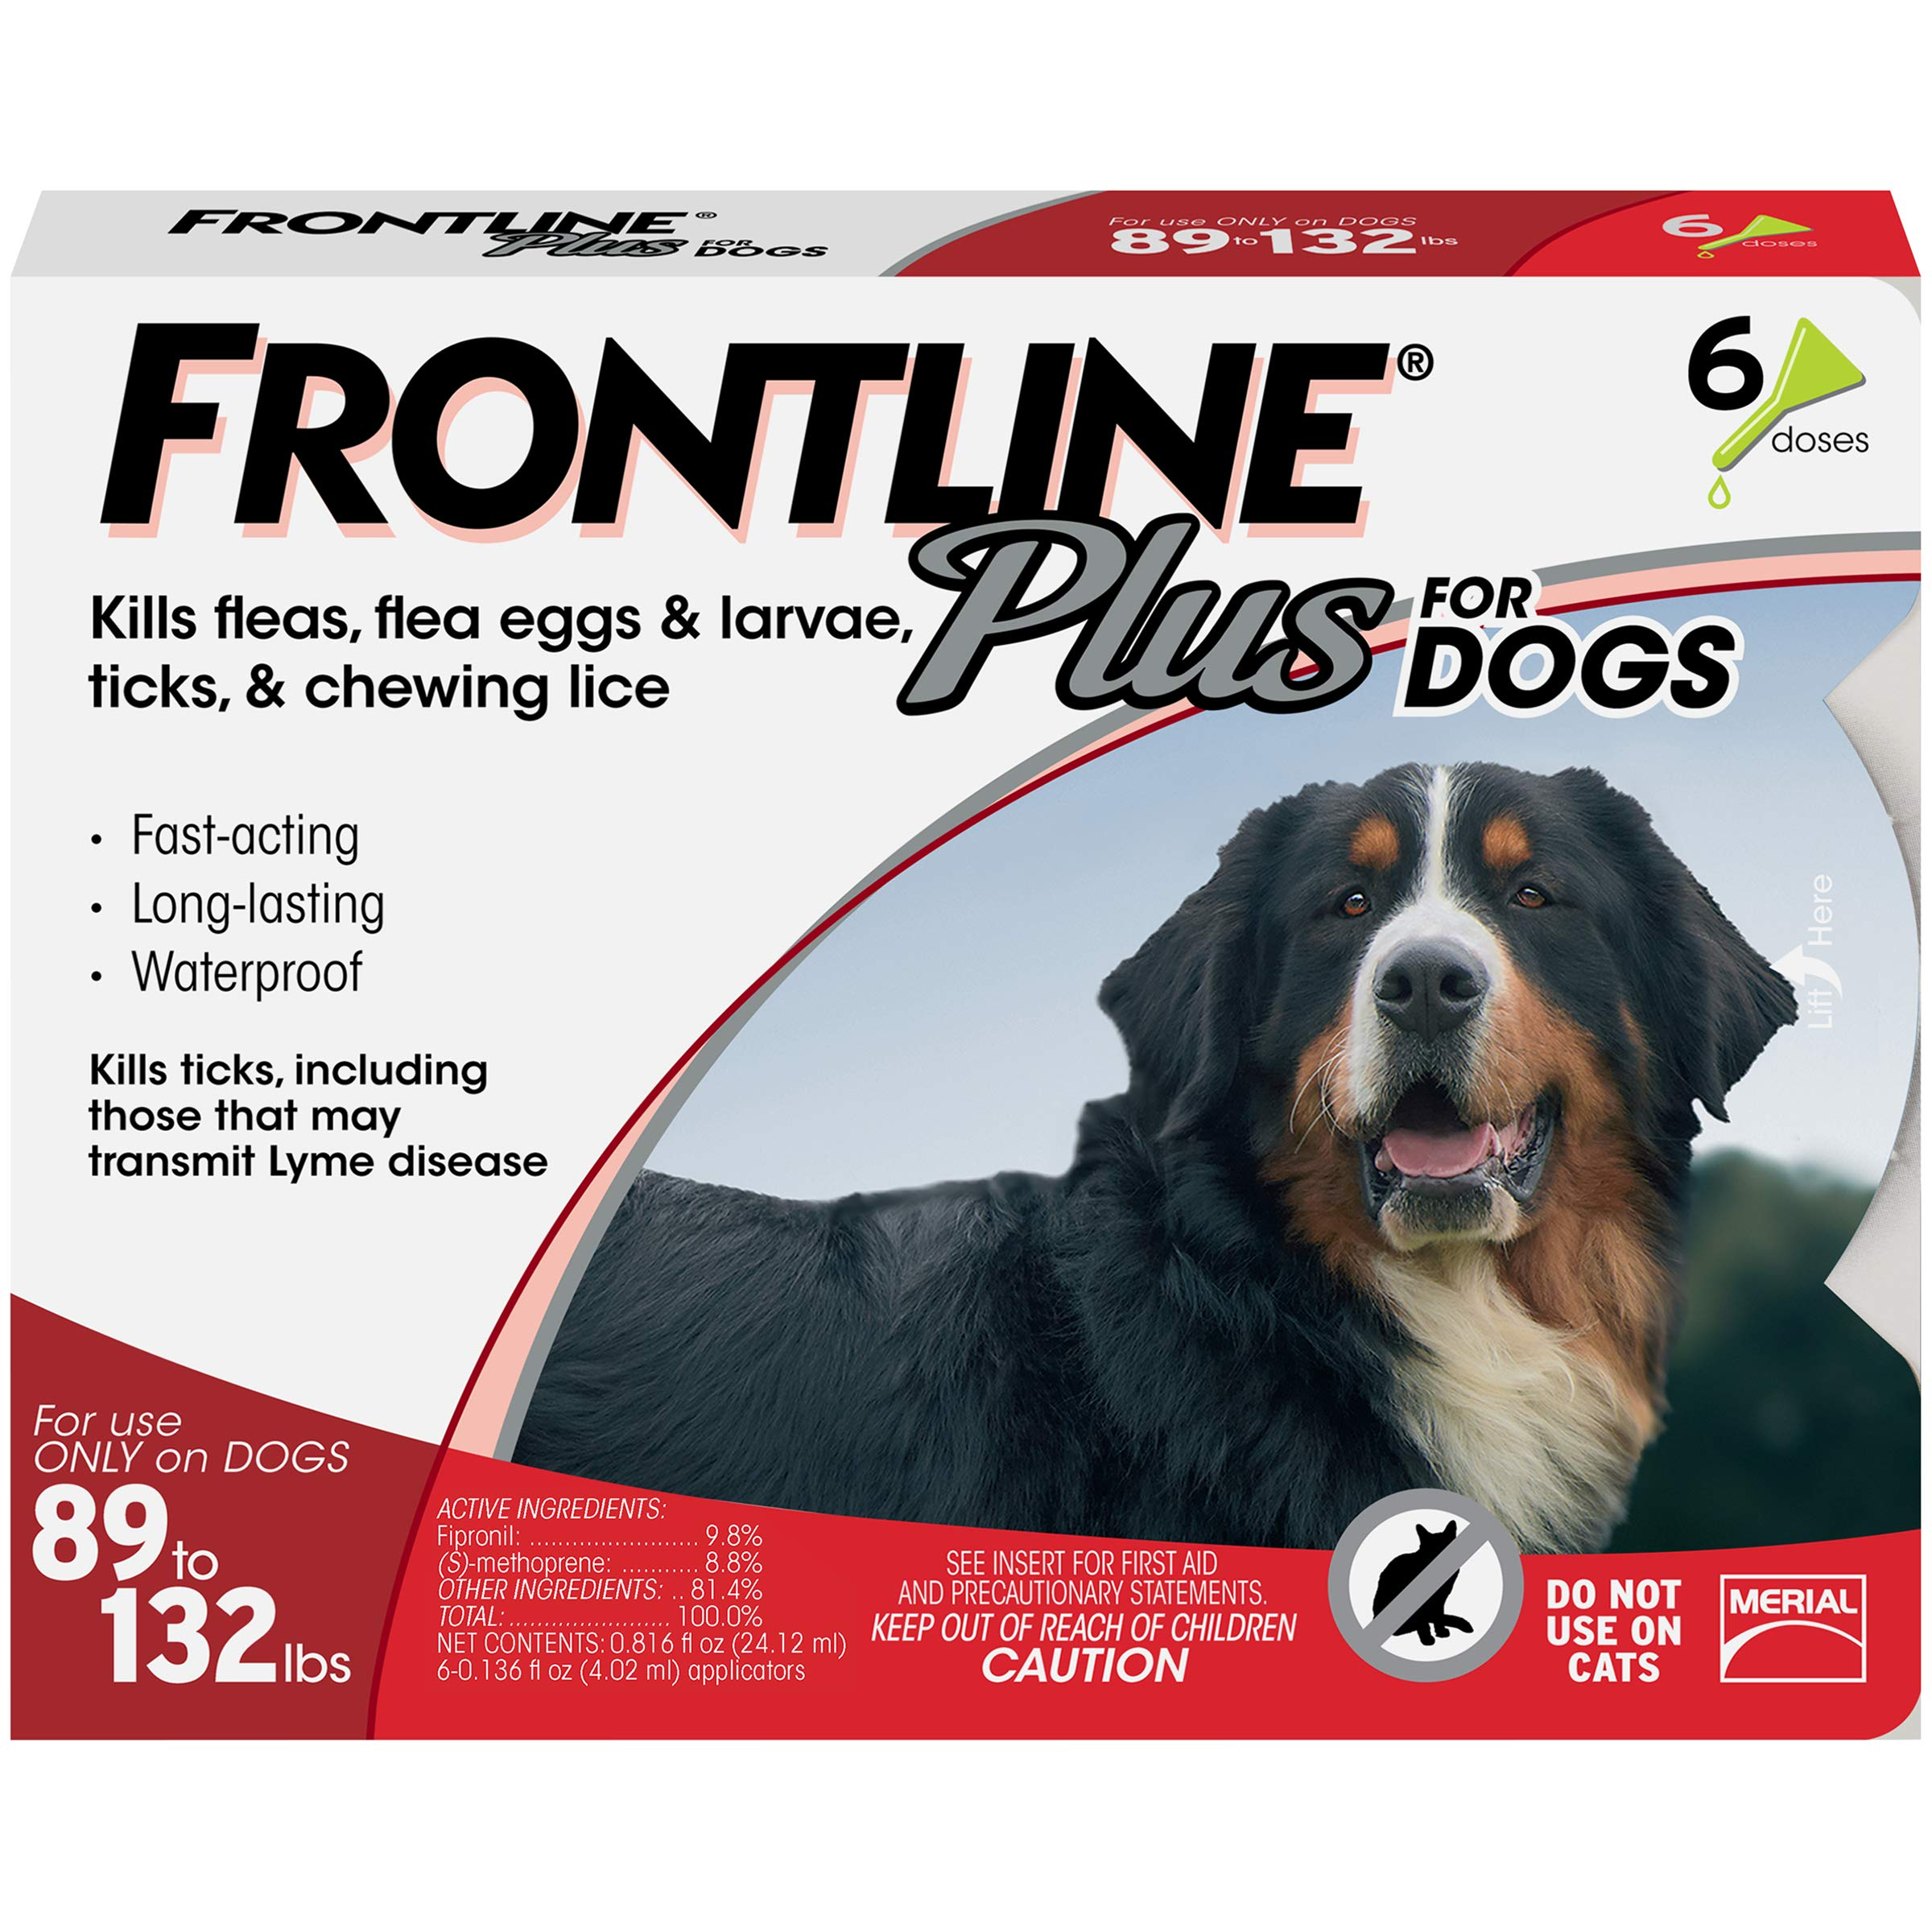 Frontline Plus for Extra Large Dogs (89 to 132 pounds) Flea and Tick Treatment, 6 Doses by Frontline